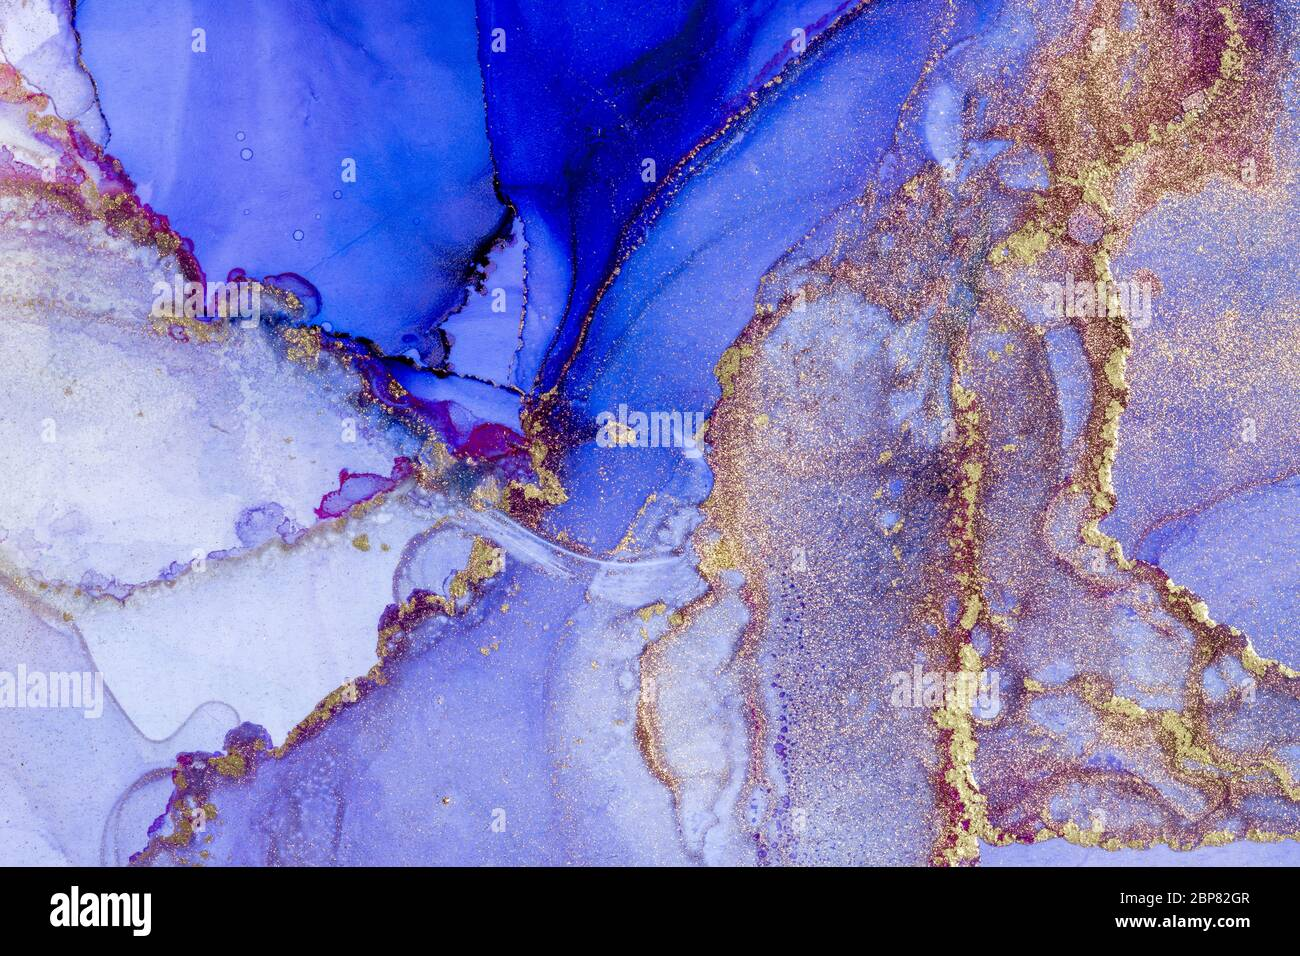 Magic Alcohol Ink Abstract Background Modern Art Abstract Artwork Trendy Blue Pink And Gold Wallpaper Stock Photo Alamy